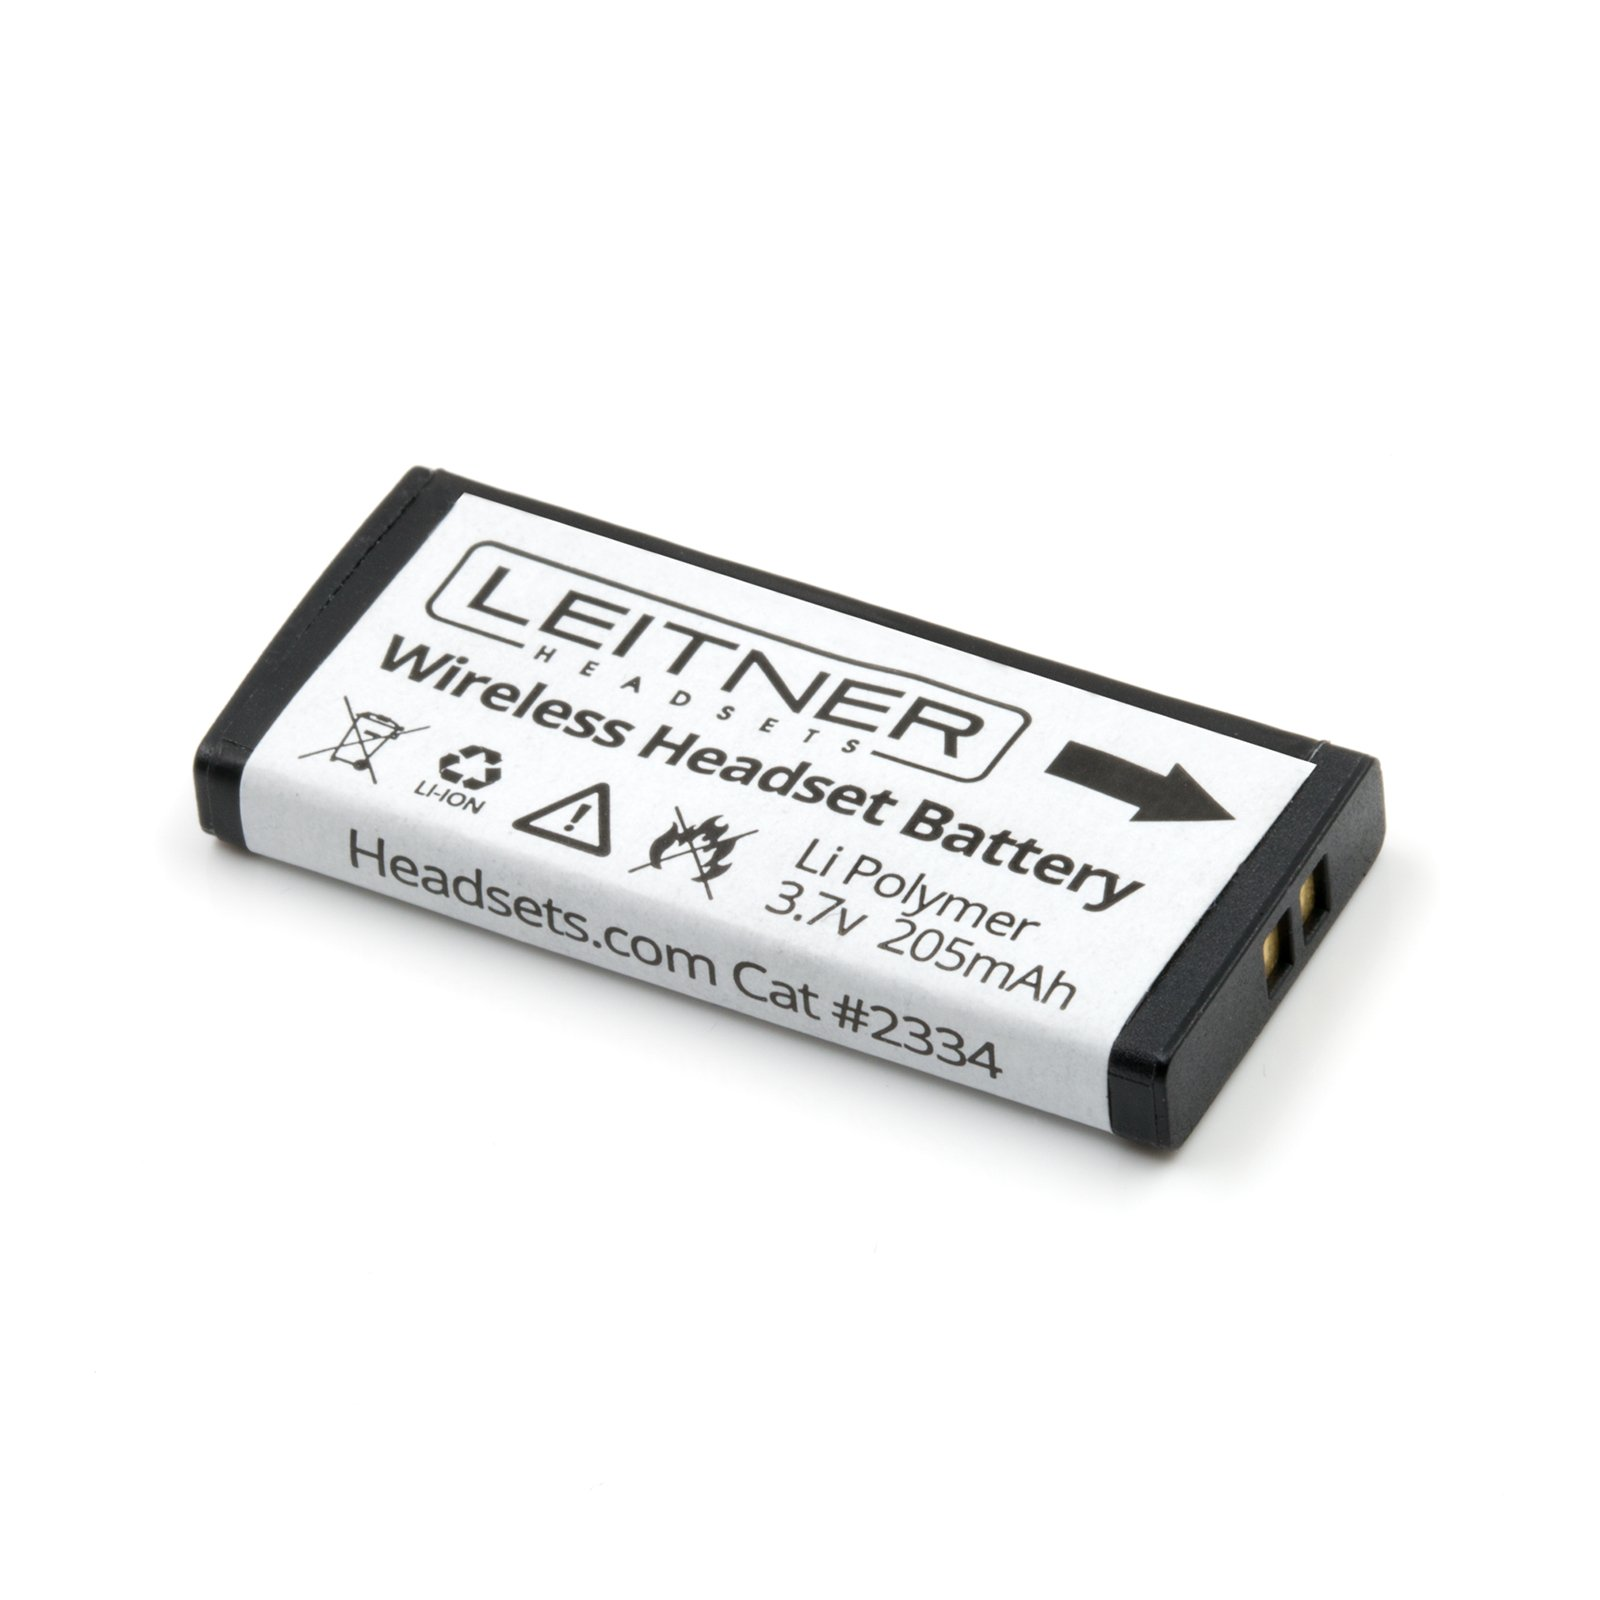 Genuine Replacement Battery for Leitner Wireless Headsets. Works with The Leitner LH170, LH270, LH275, and LH280